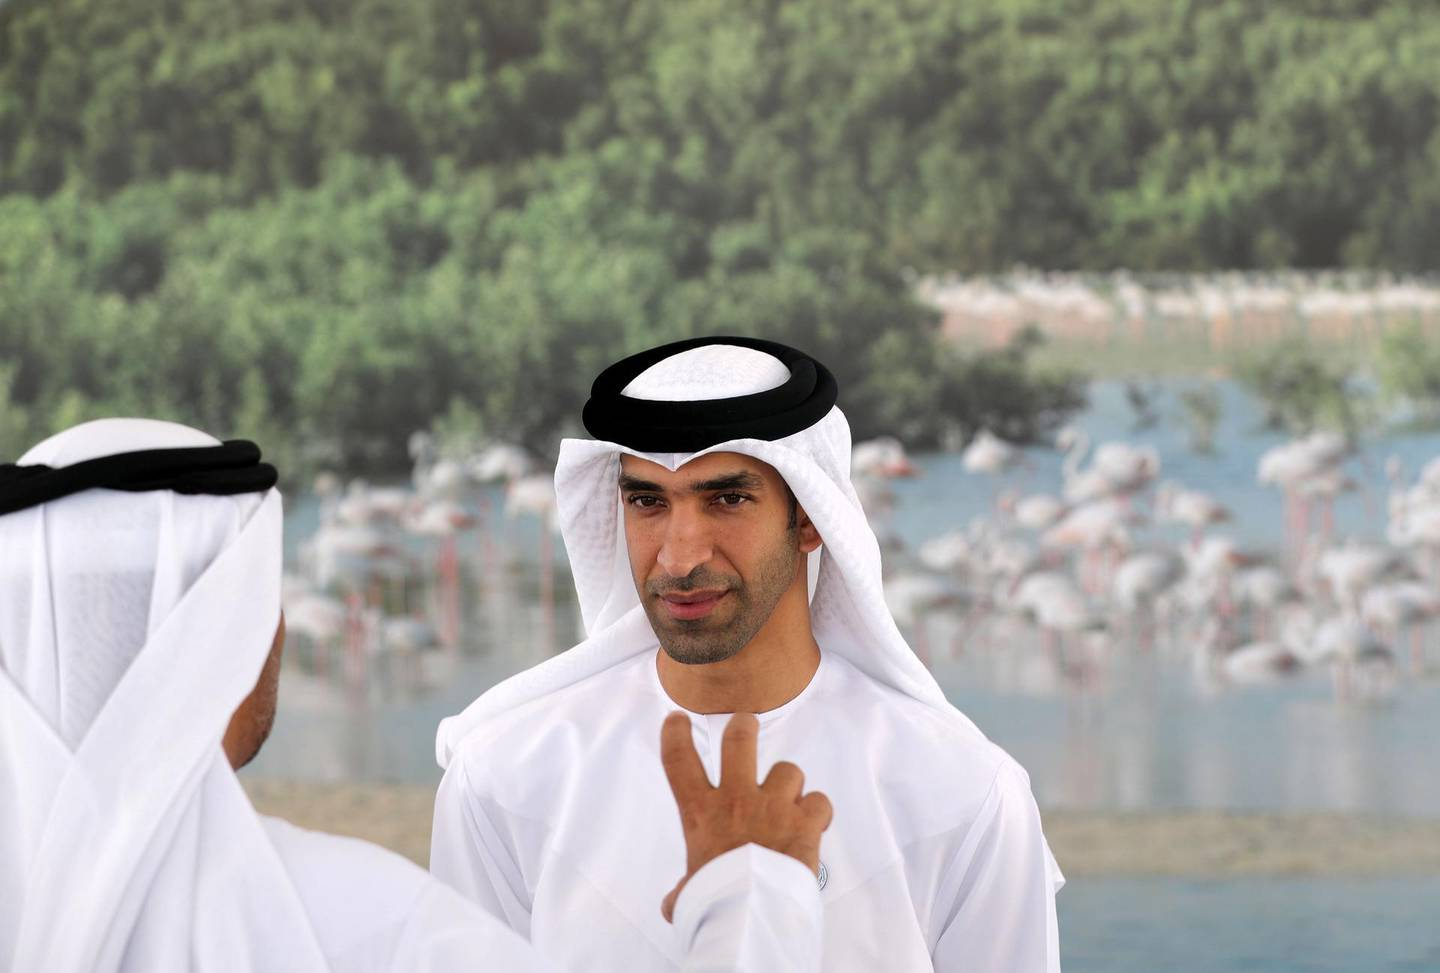 Ras Al Khaimah, United Arab Emirates - October 13, 2018: His Excellency Dr Thani bin Ahmed Al Zeyoudi, Minister of Climate Change and Environment Directors of municipalities and environment agencies in the UAE. The launch of the ecotourism microsite and app coincides with the National Ecotourism Project, a multiphased initiative that will position the UAE as a global ecotourism hub. Saturday, October 13th, 2018 in Al Rams, Ras Al Khaimah. Chris Whiteoak / The National